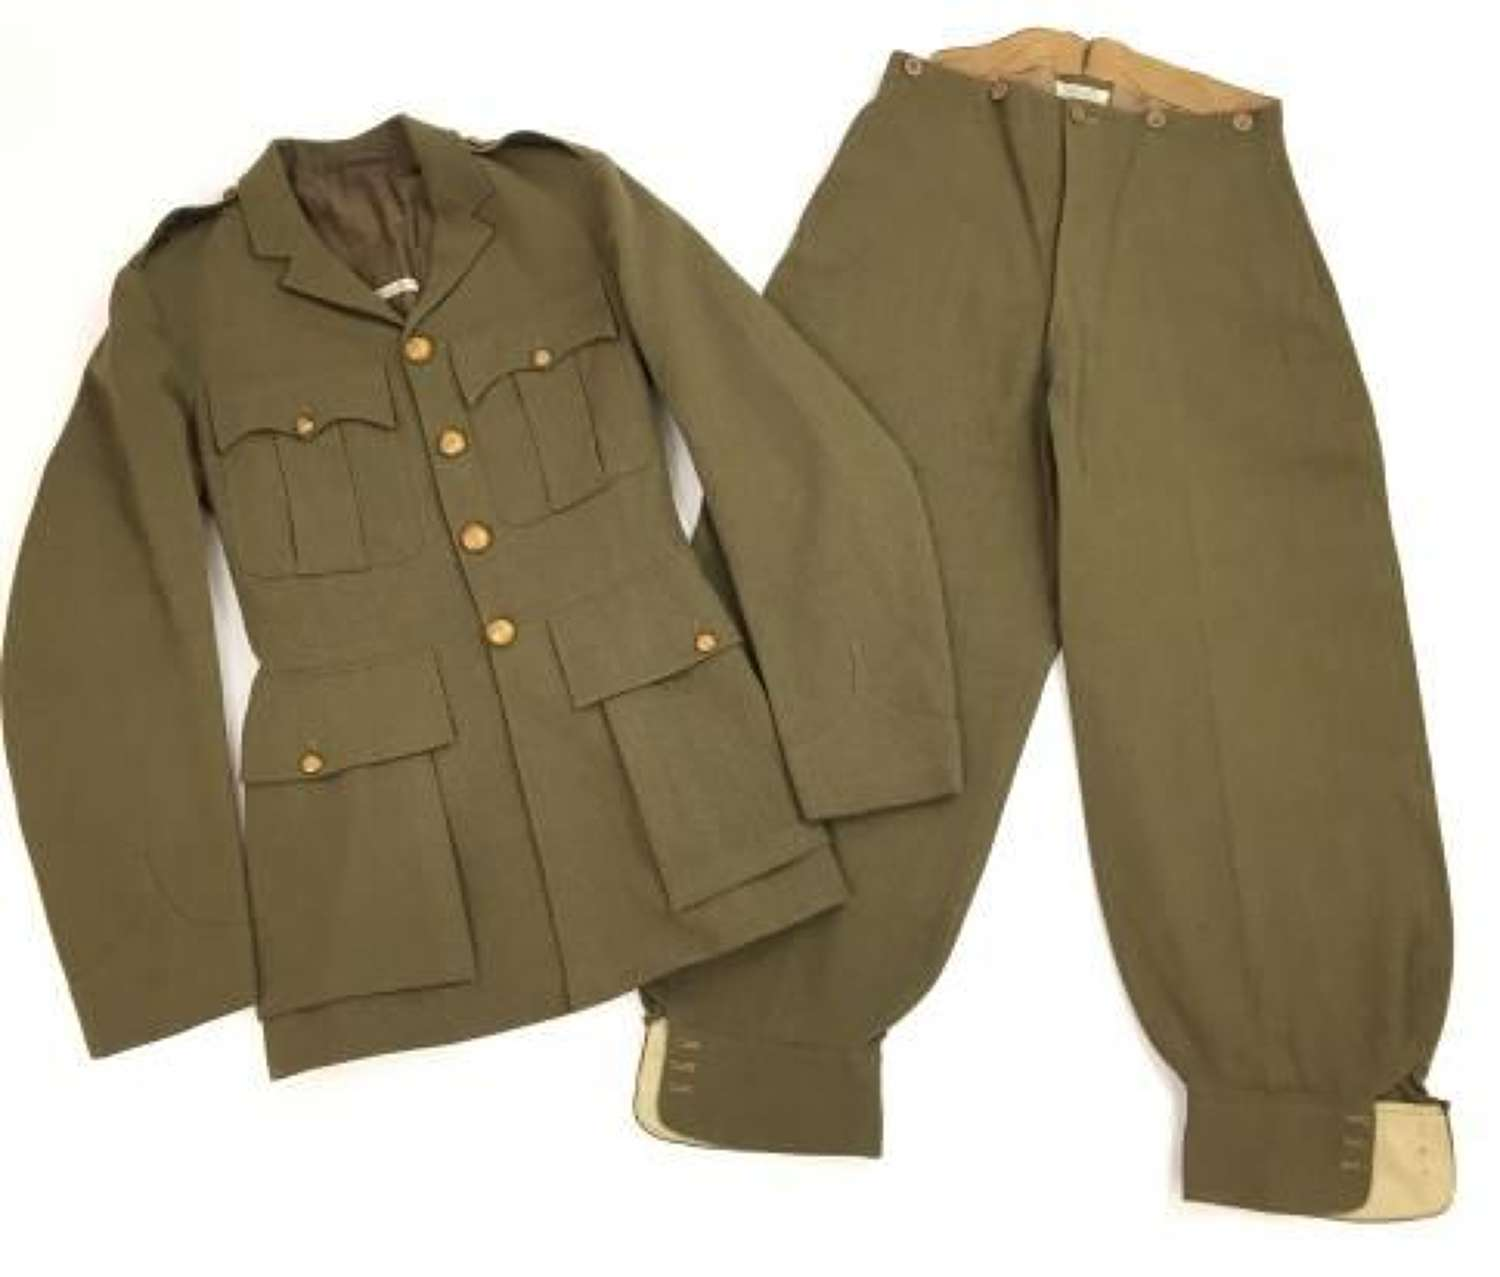 Original 1930s Officers Uniform with BEF and Dunkirk History